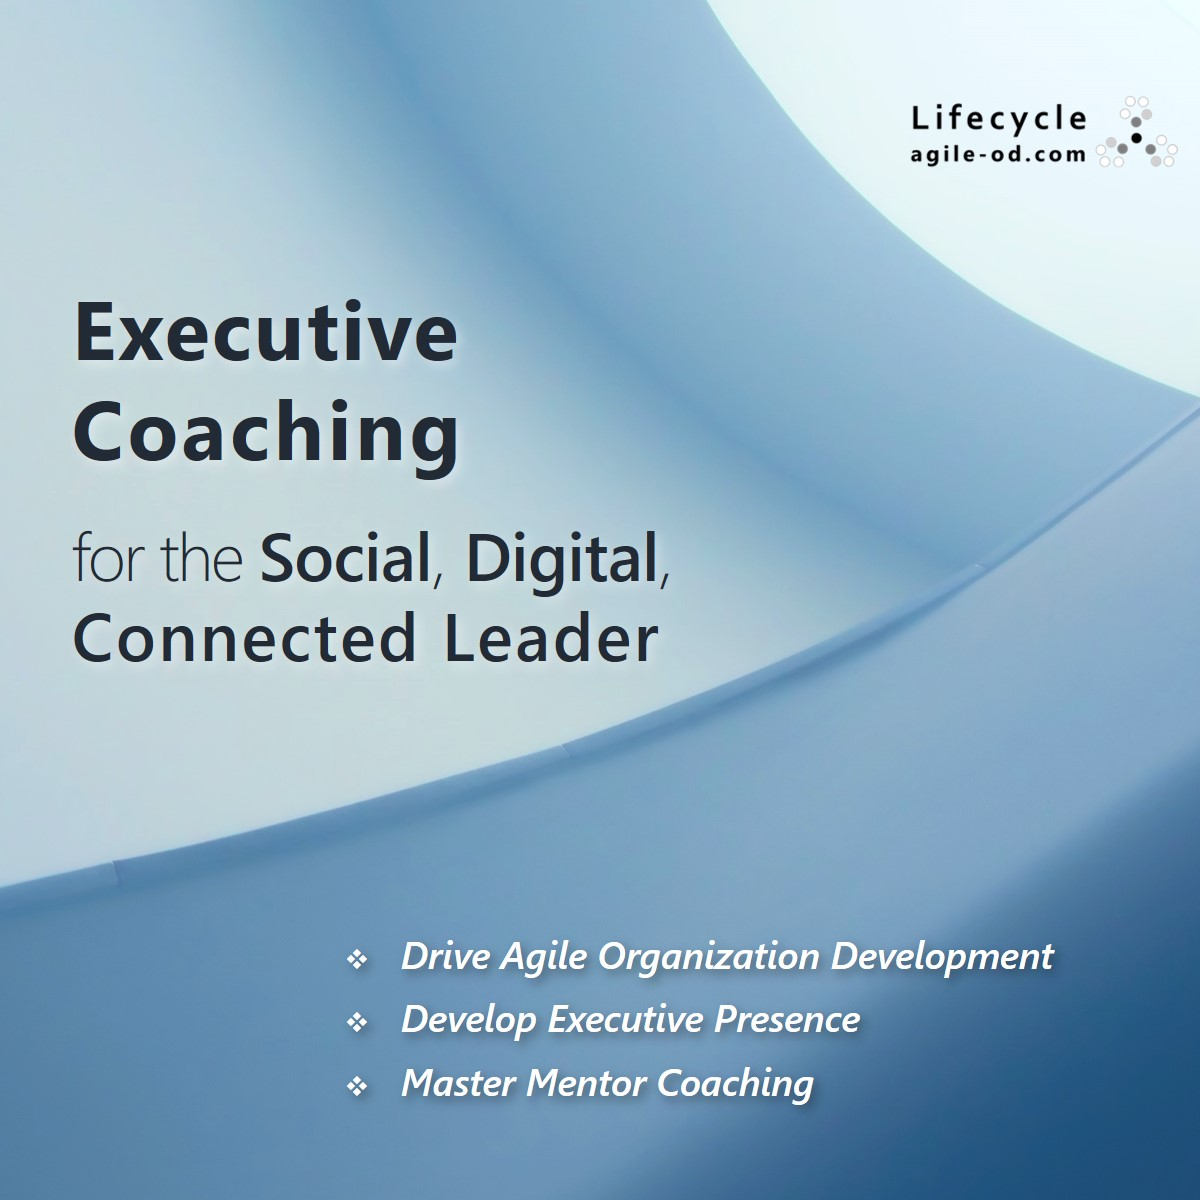 Executive Coaching for the Social Digital Connected Leader - Lifecycle - agile-od.com